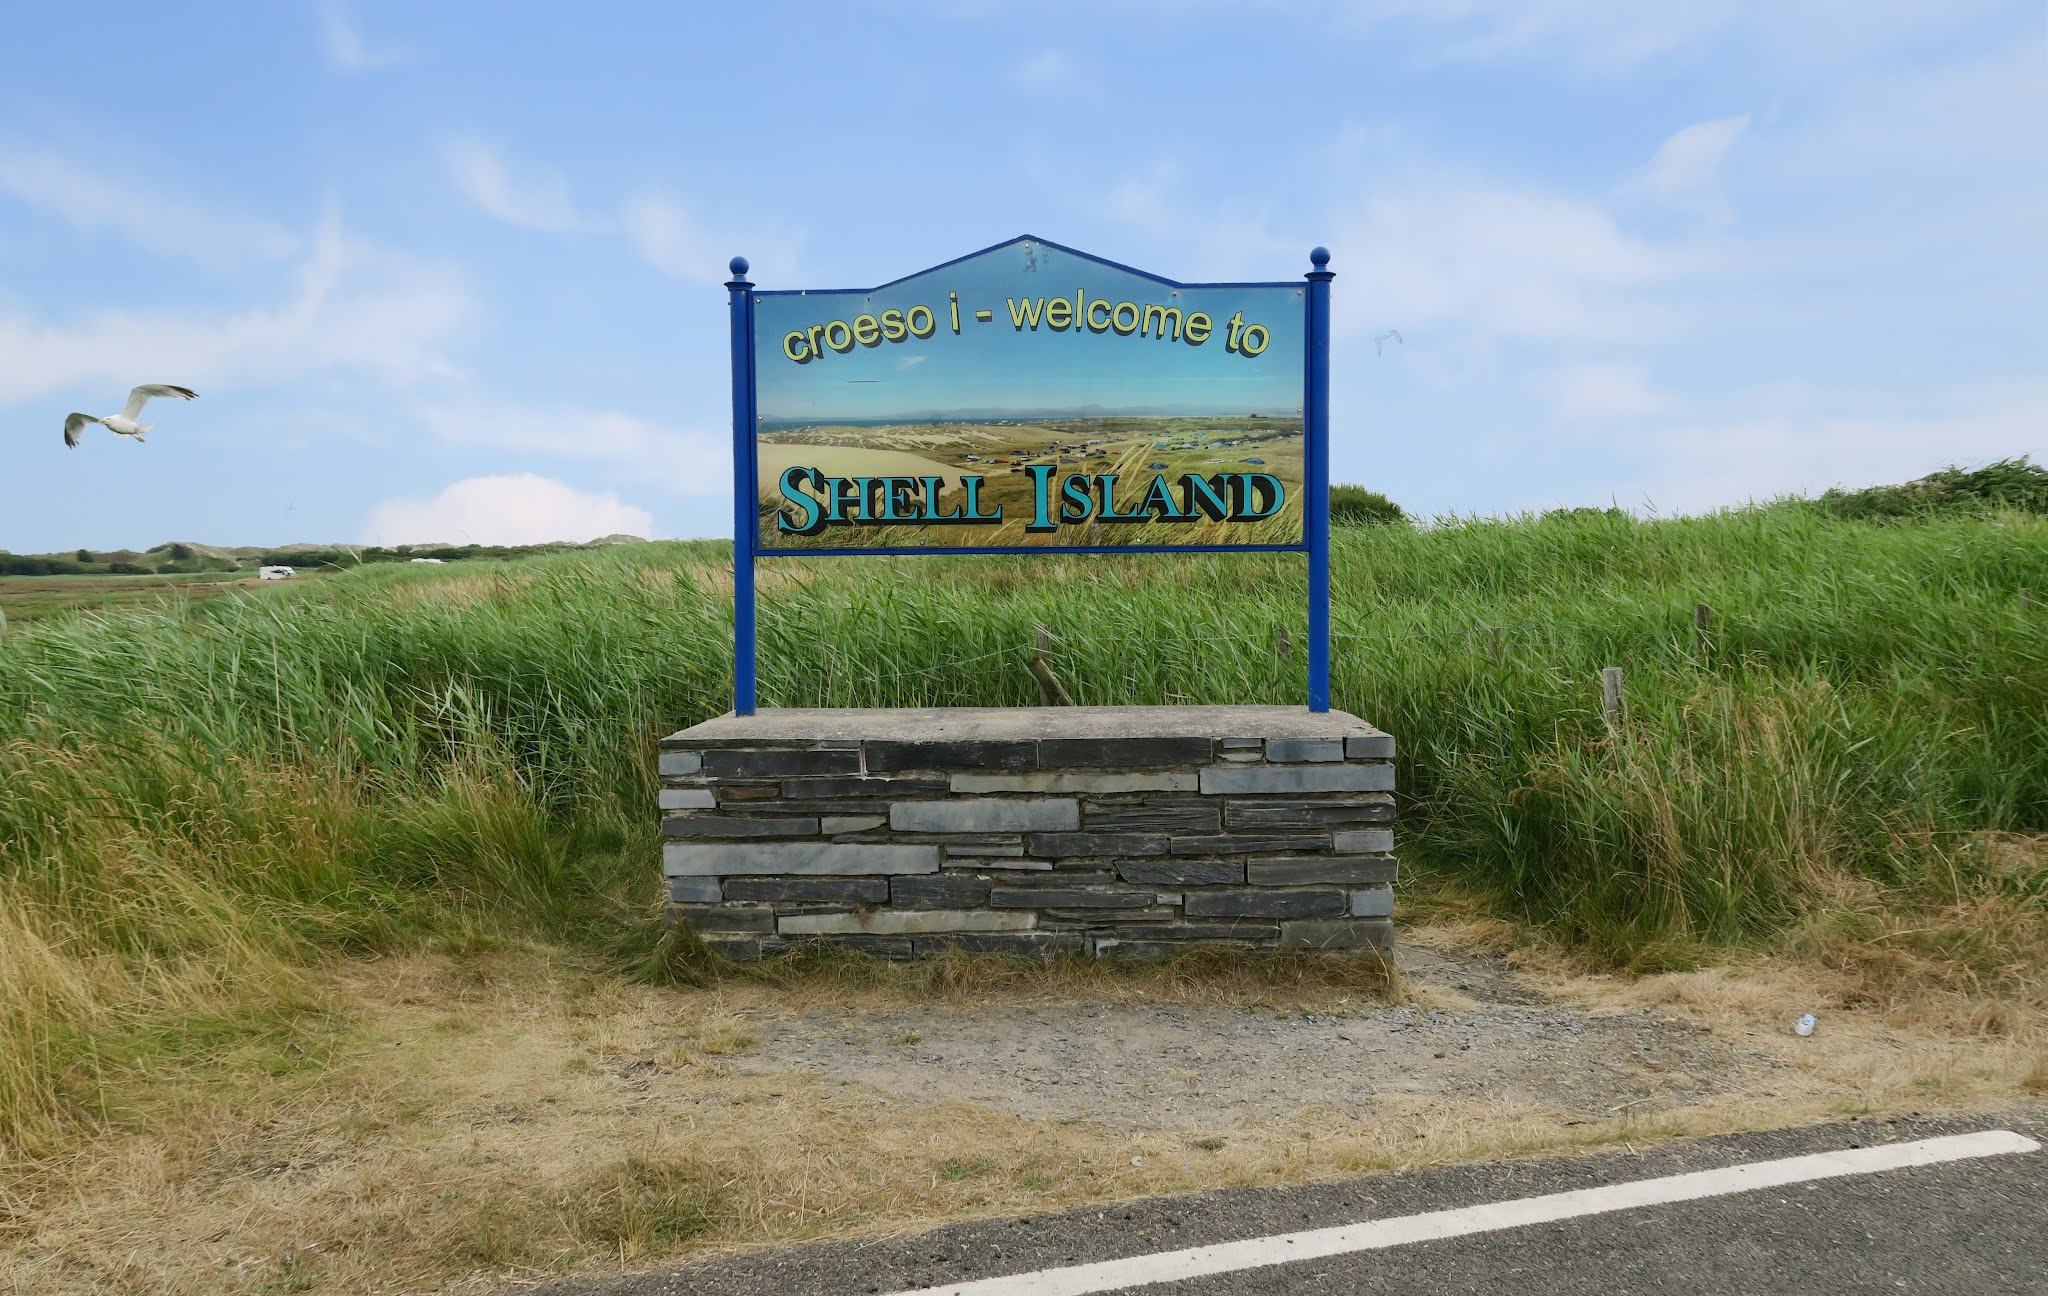 The welcoming entrance sign to Shell Island. Seagulls can be seen flying in the background.